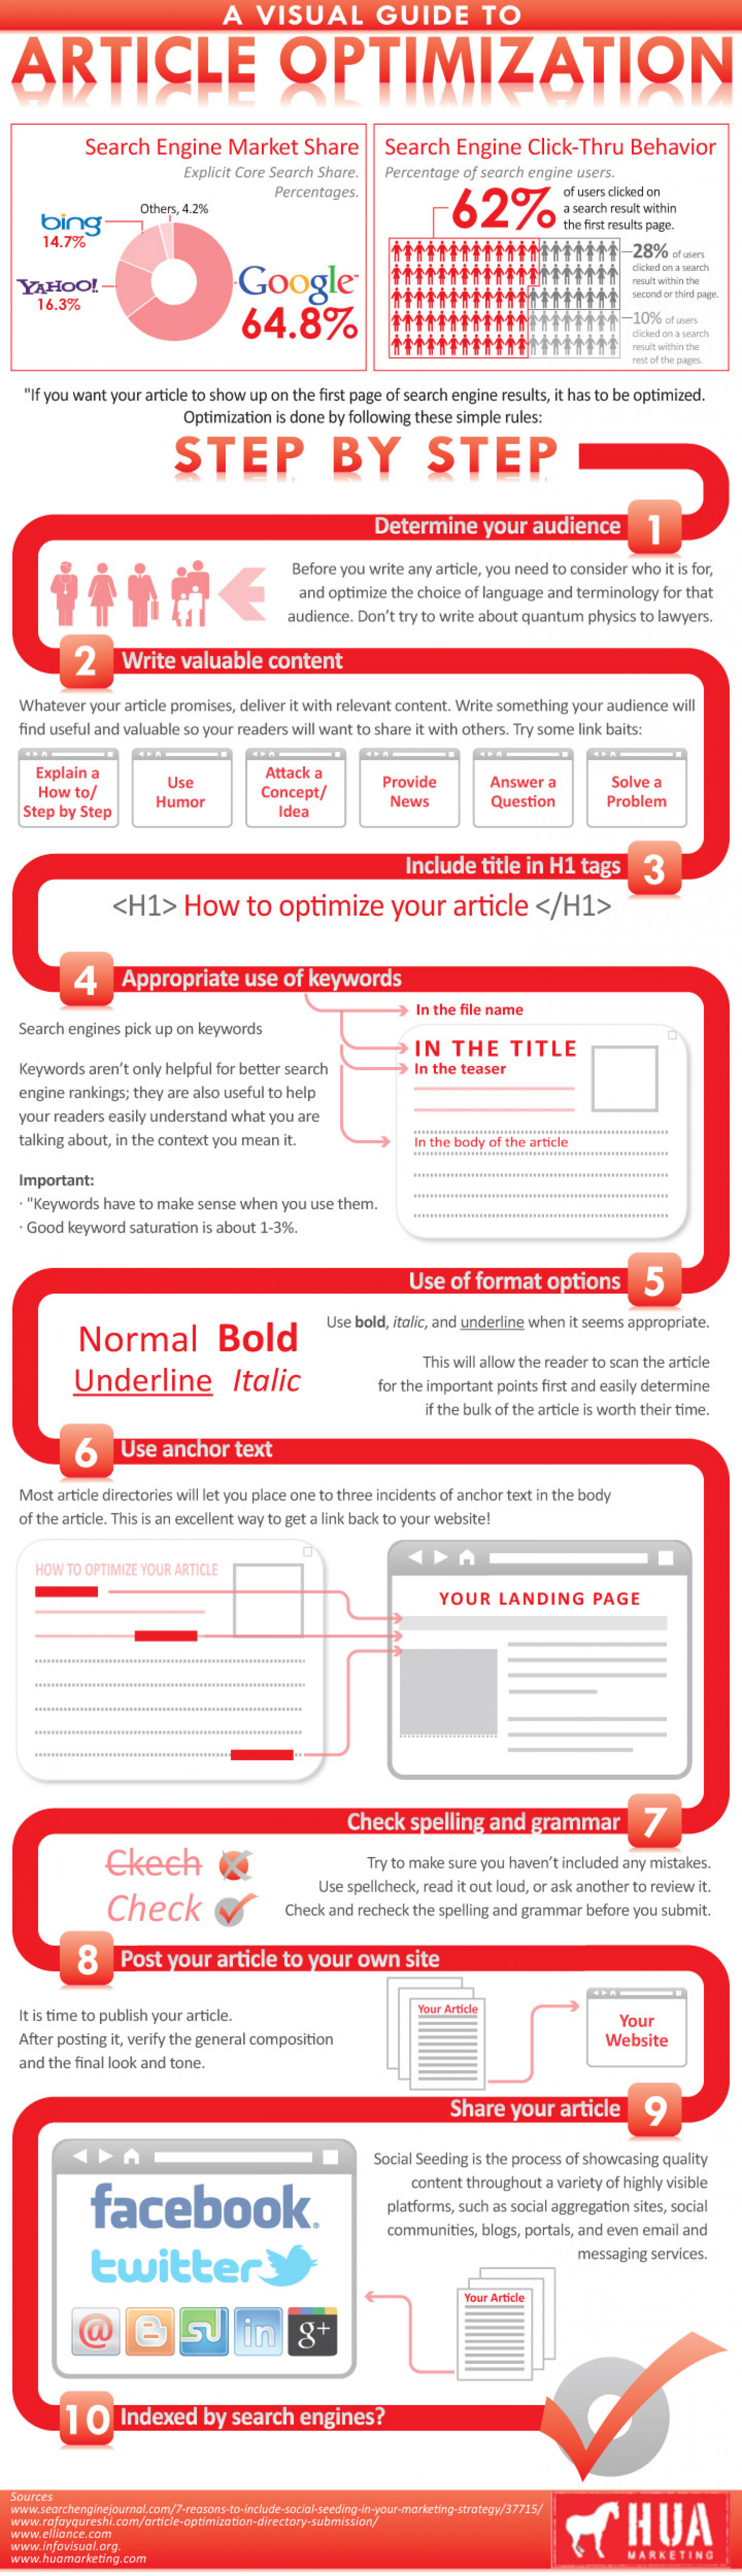 A Visual Guide to Article Optimization Infographic